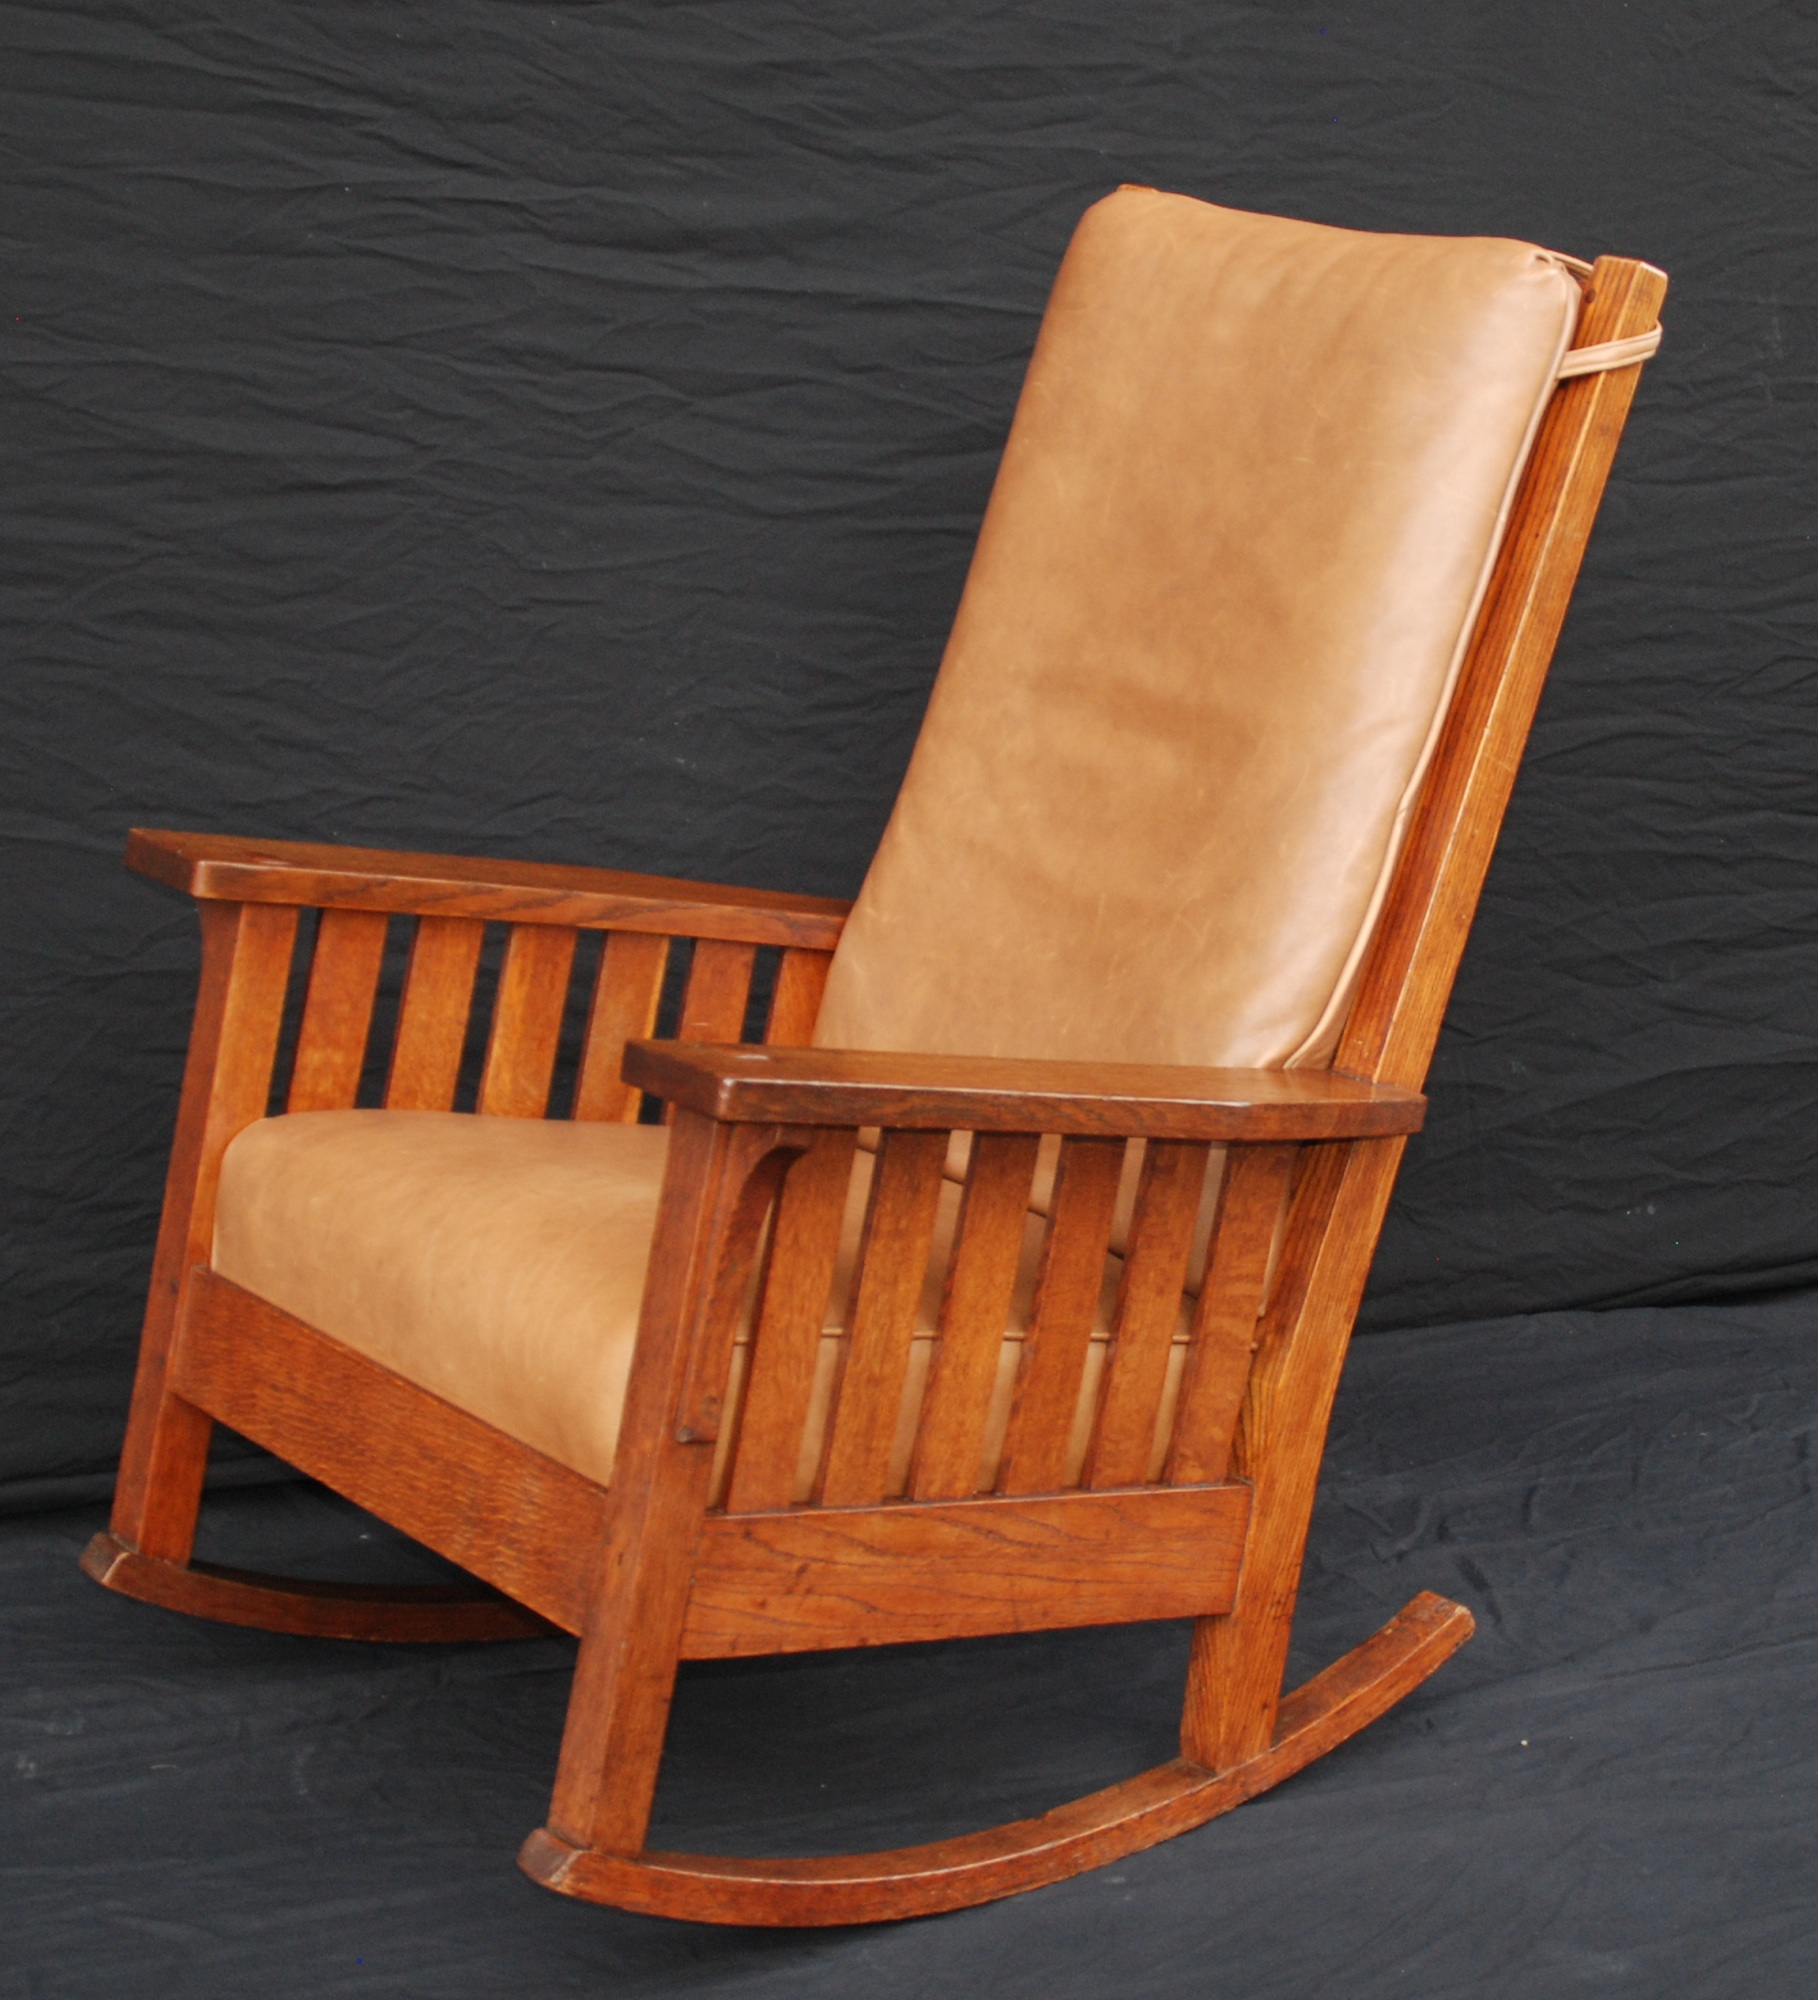 L U0026 J G Stickley Uncommon Large High Back Rocking Chair With Slats Under  The Arms,